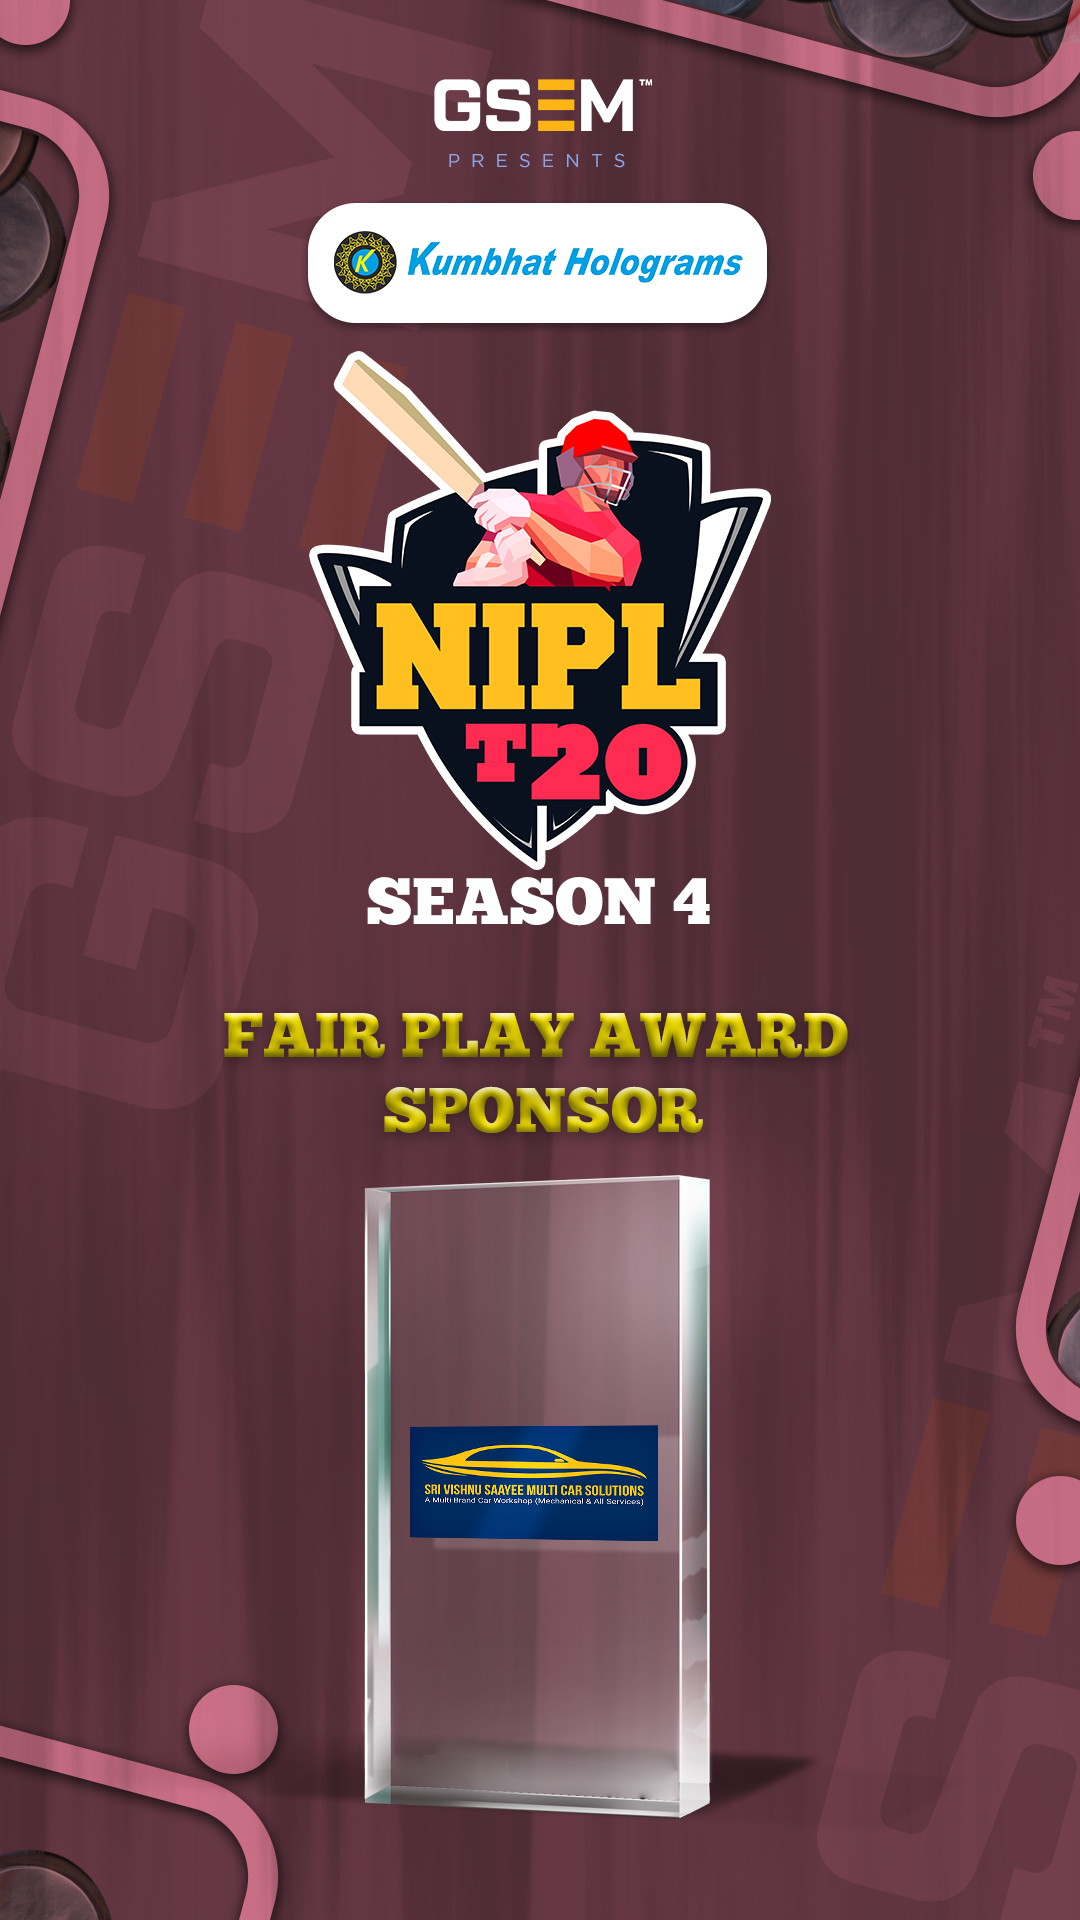 fair-play-award-sponsor-poster